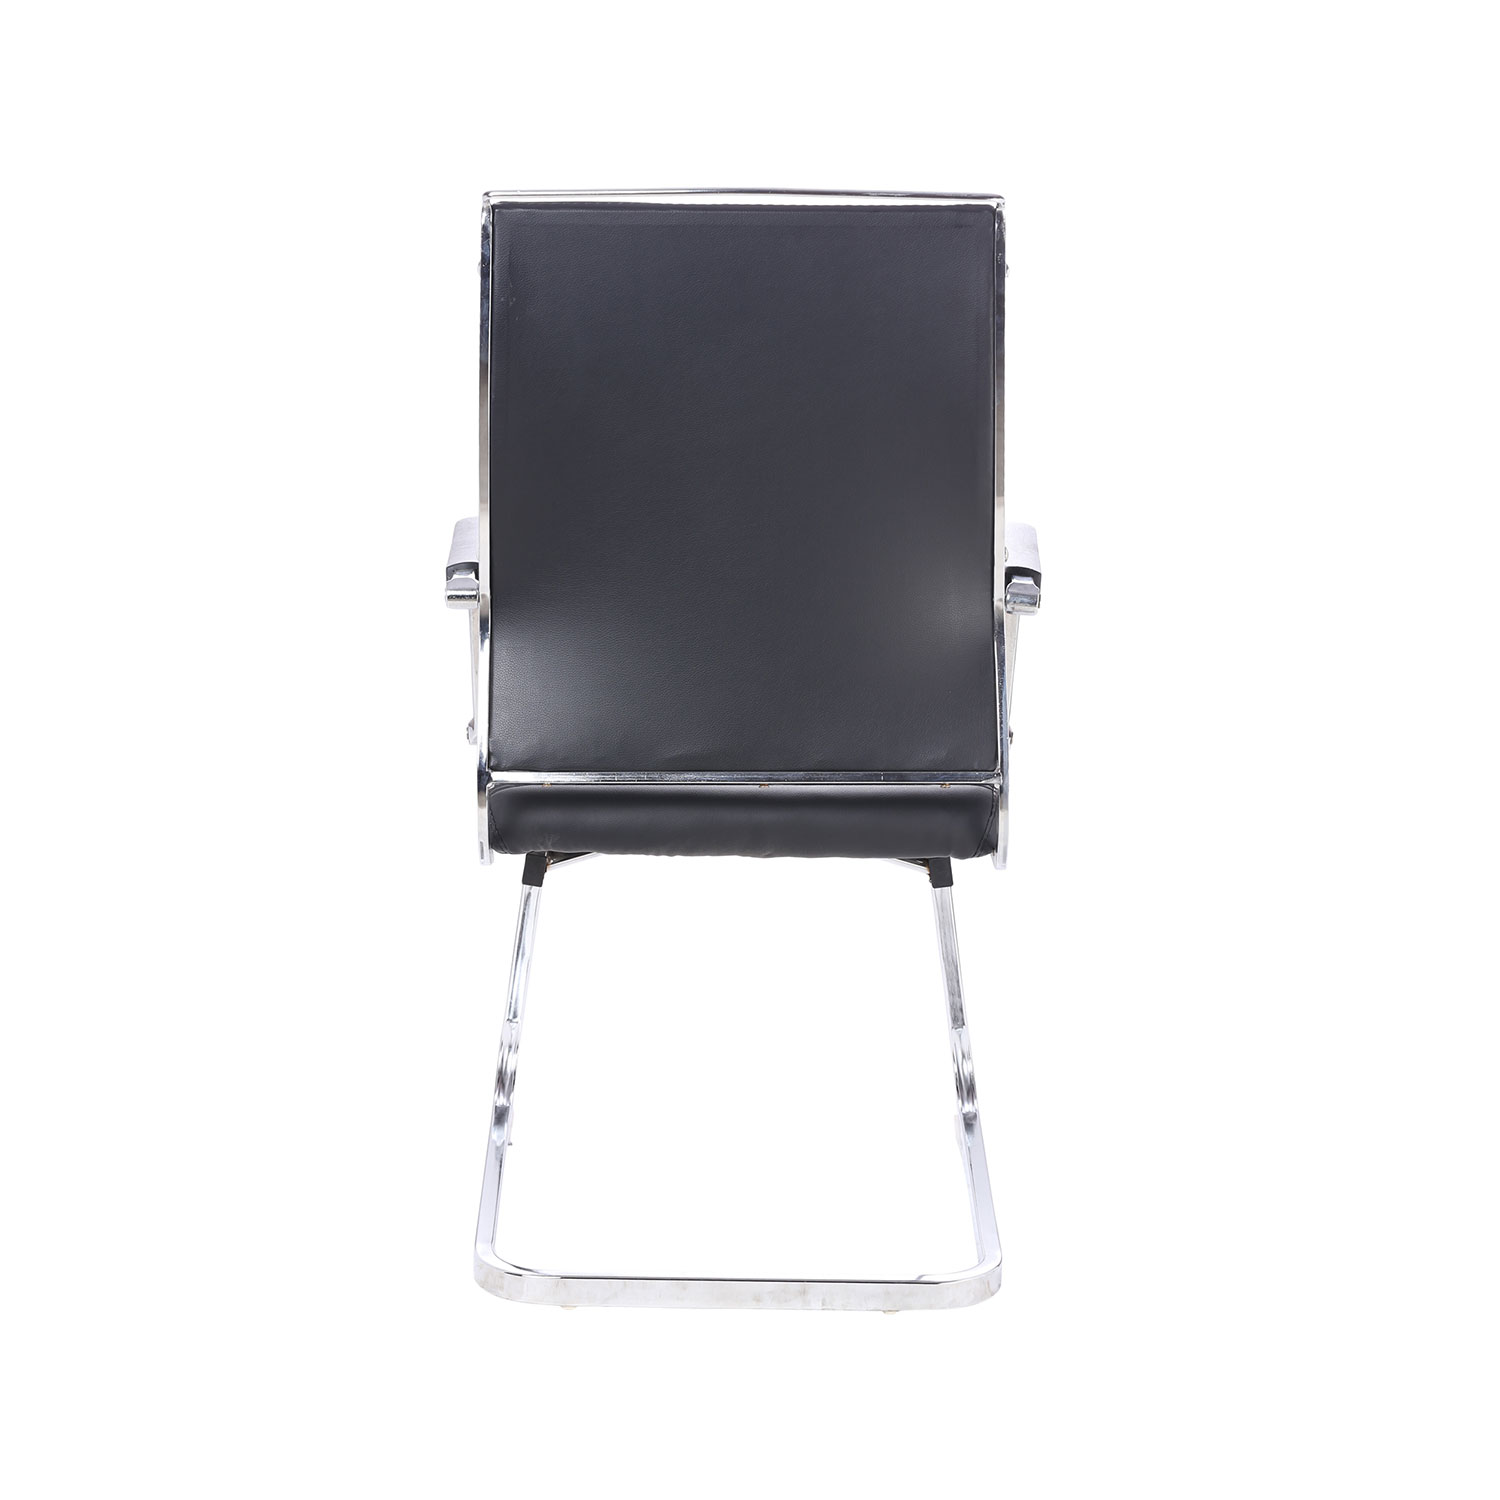 revolving chair bar stool parts names arrotrate medium back fix and in black leahterette - vj interior